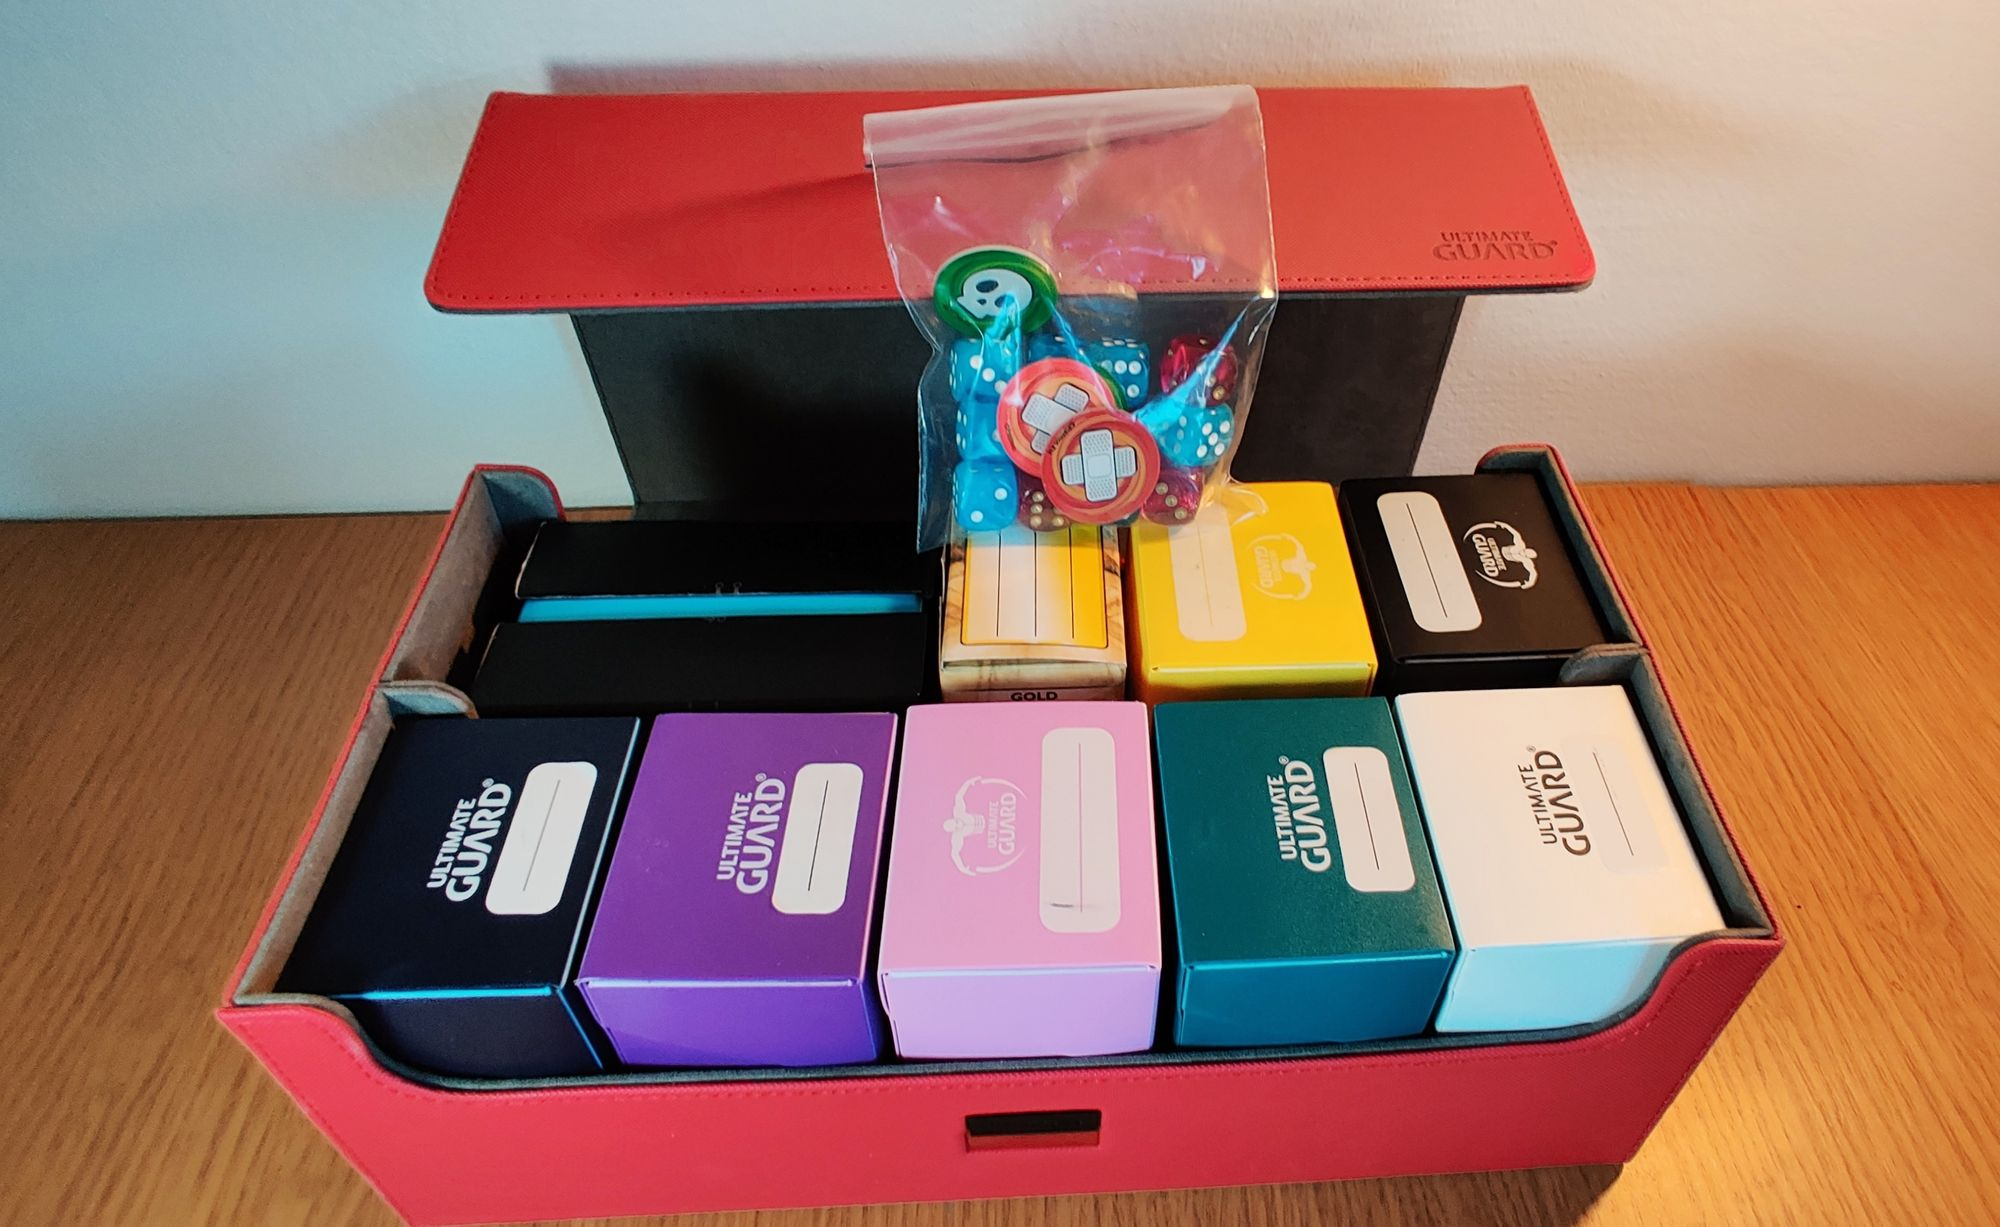 A large red box with open lid and 9 small deck boxes of games inside